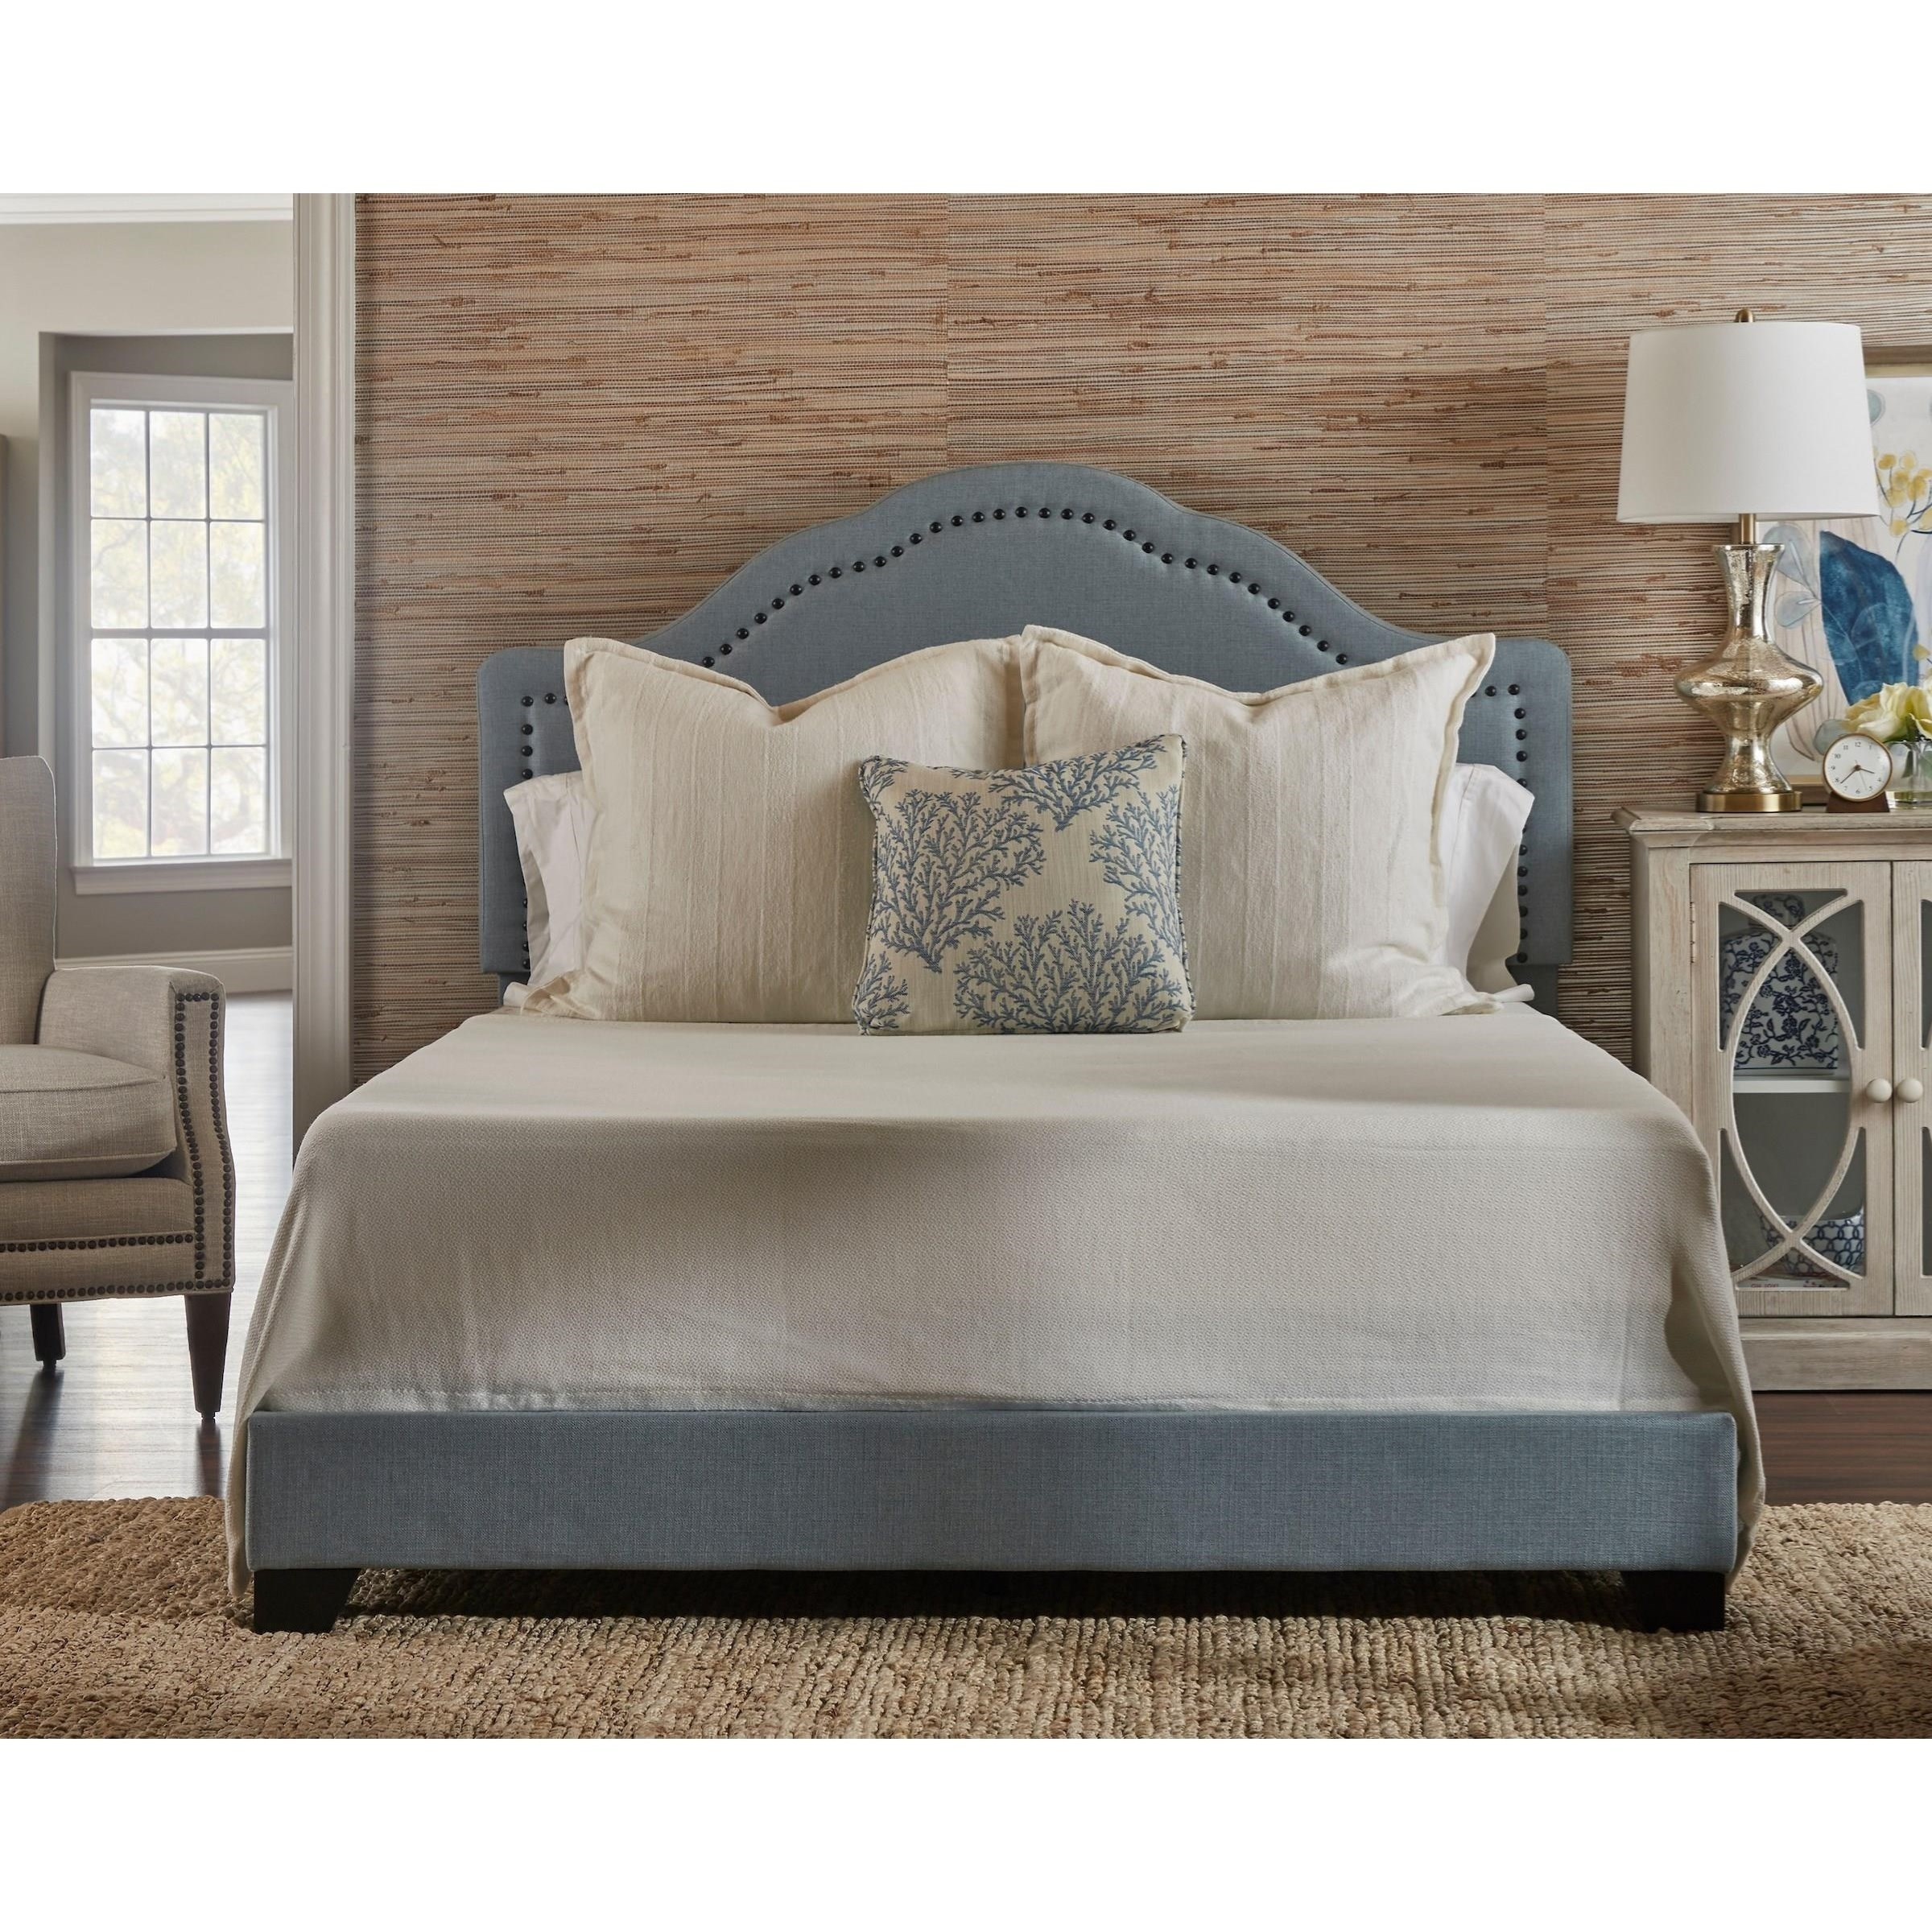 Possibilities - 298 Queen Upholstered Bed by Klaussner International at Catalog Outlet